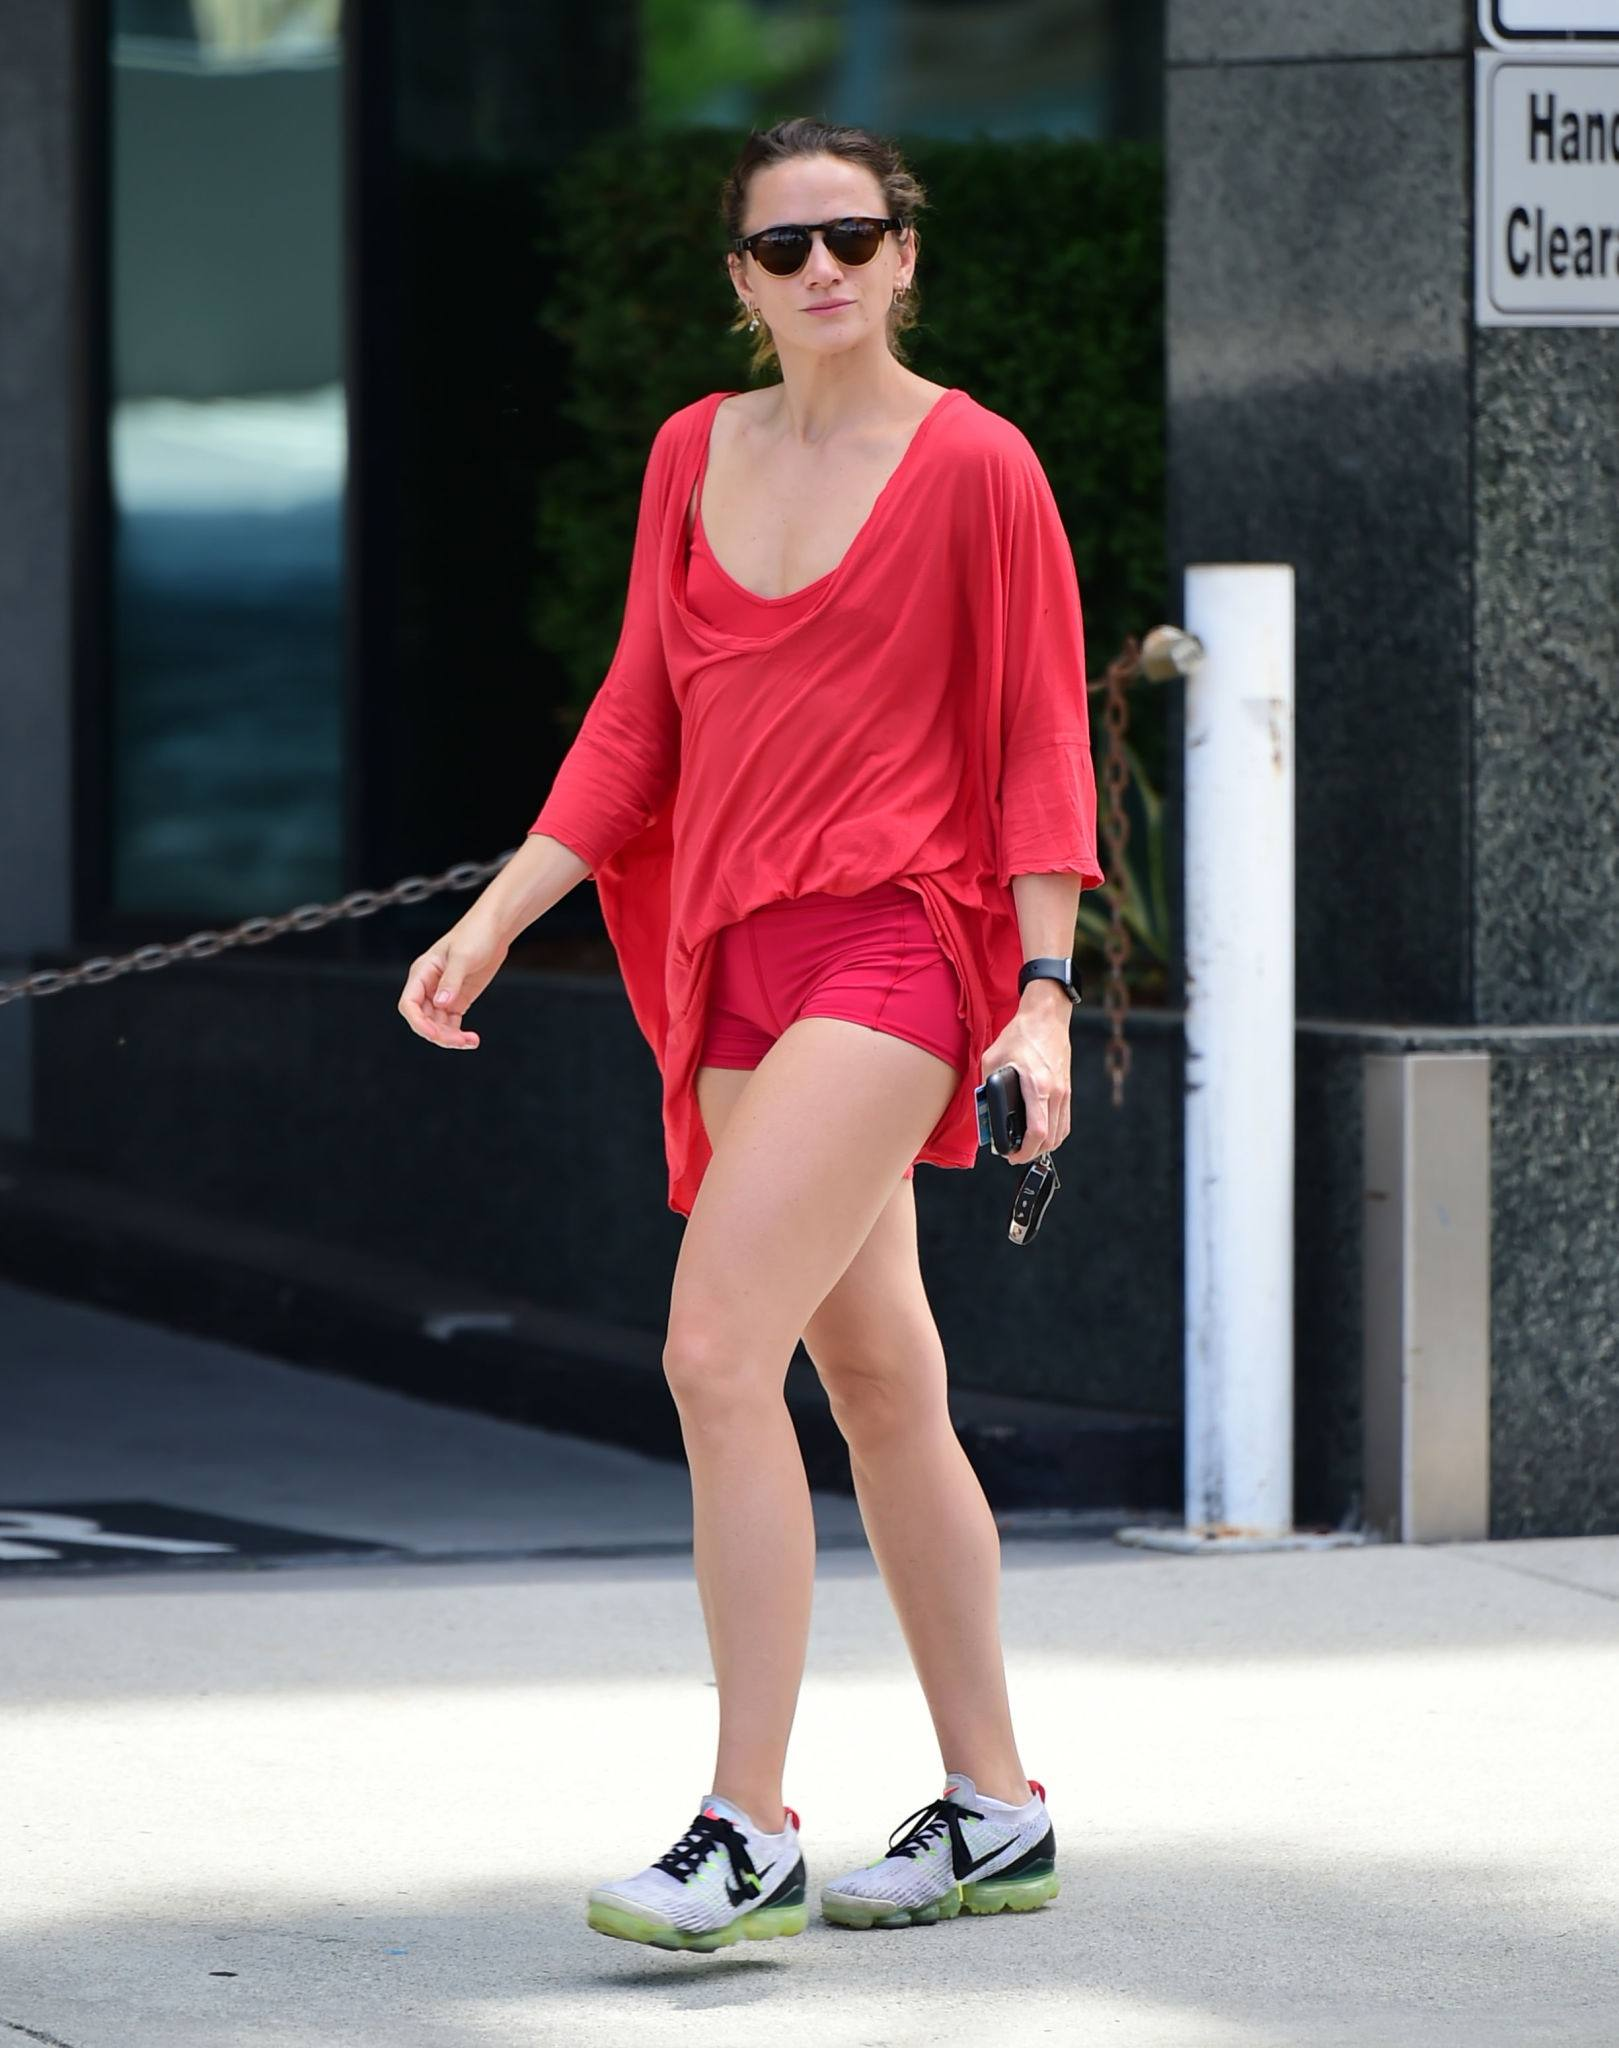 Shantel Vansanten – Sexy Legs In Tiny Red Shorts Out In Los Angeles 0010